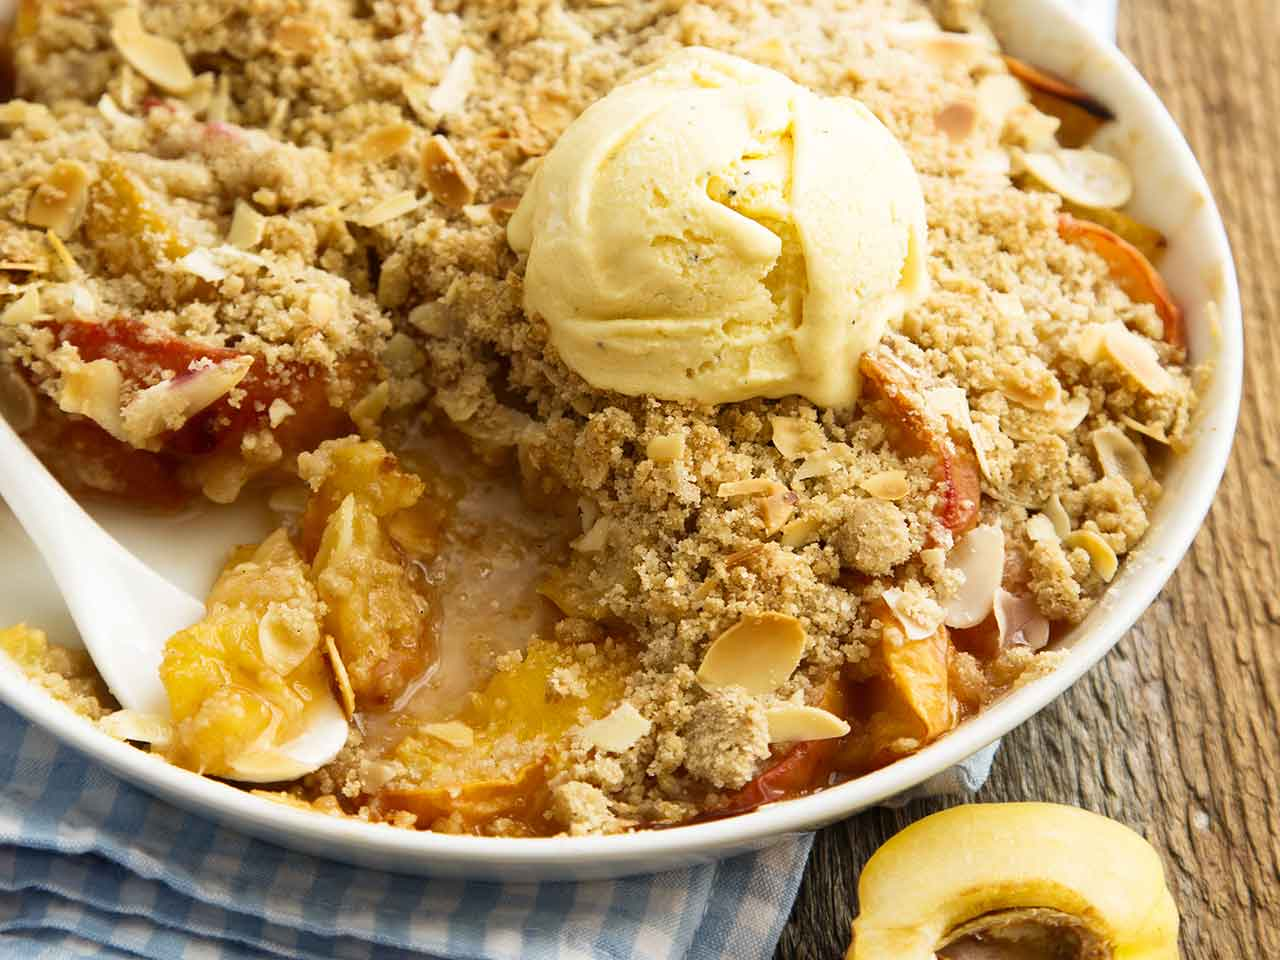 Raspberry, peach and almond crumble